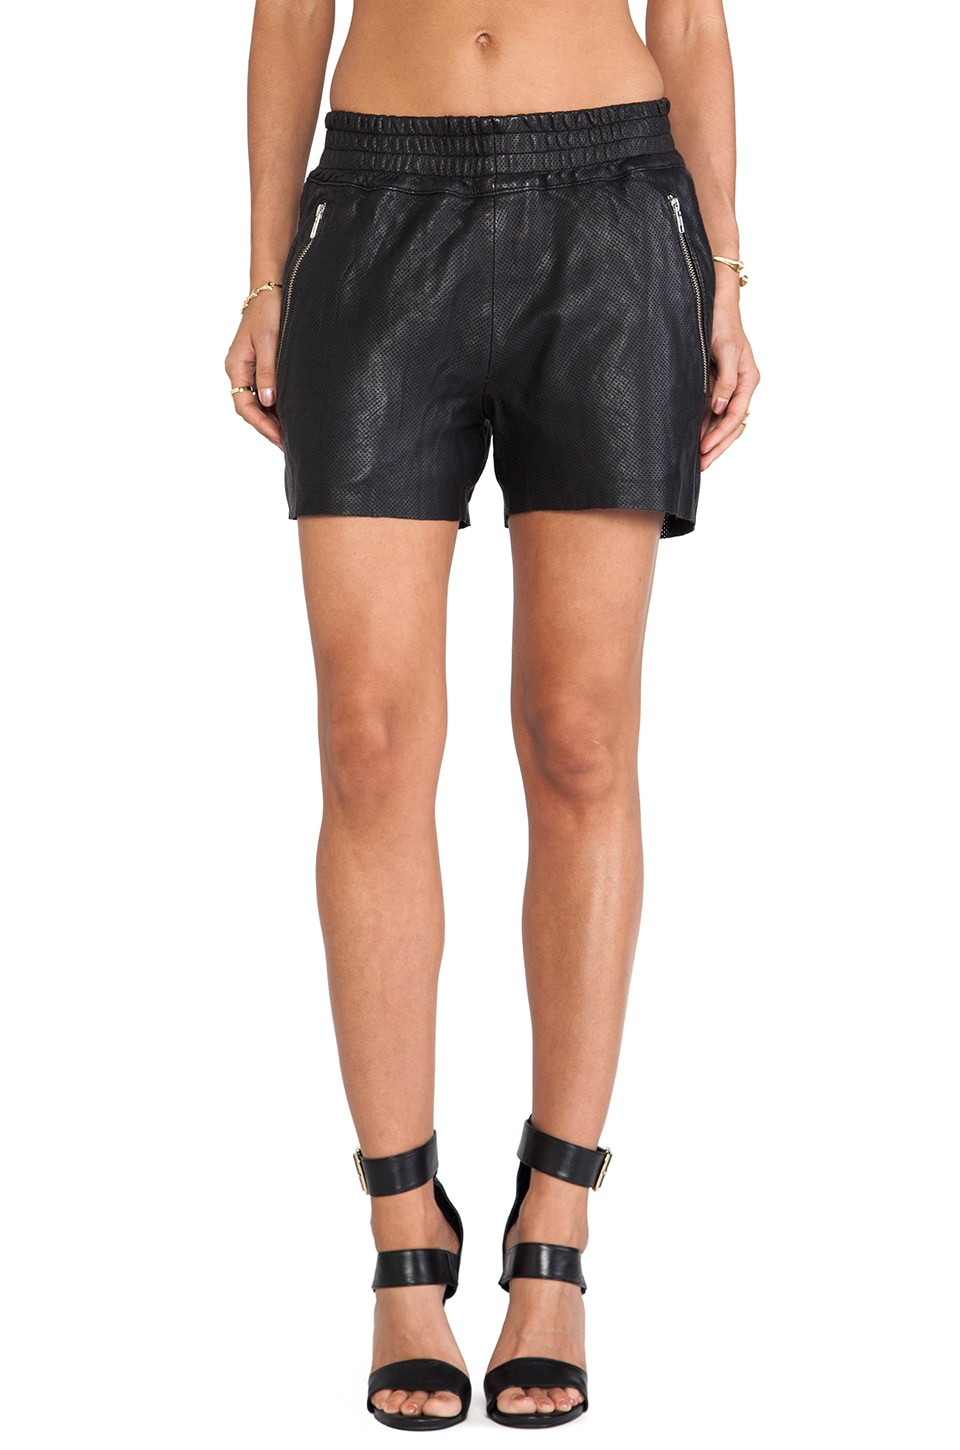 OAK Rider Short in Black